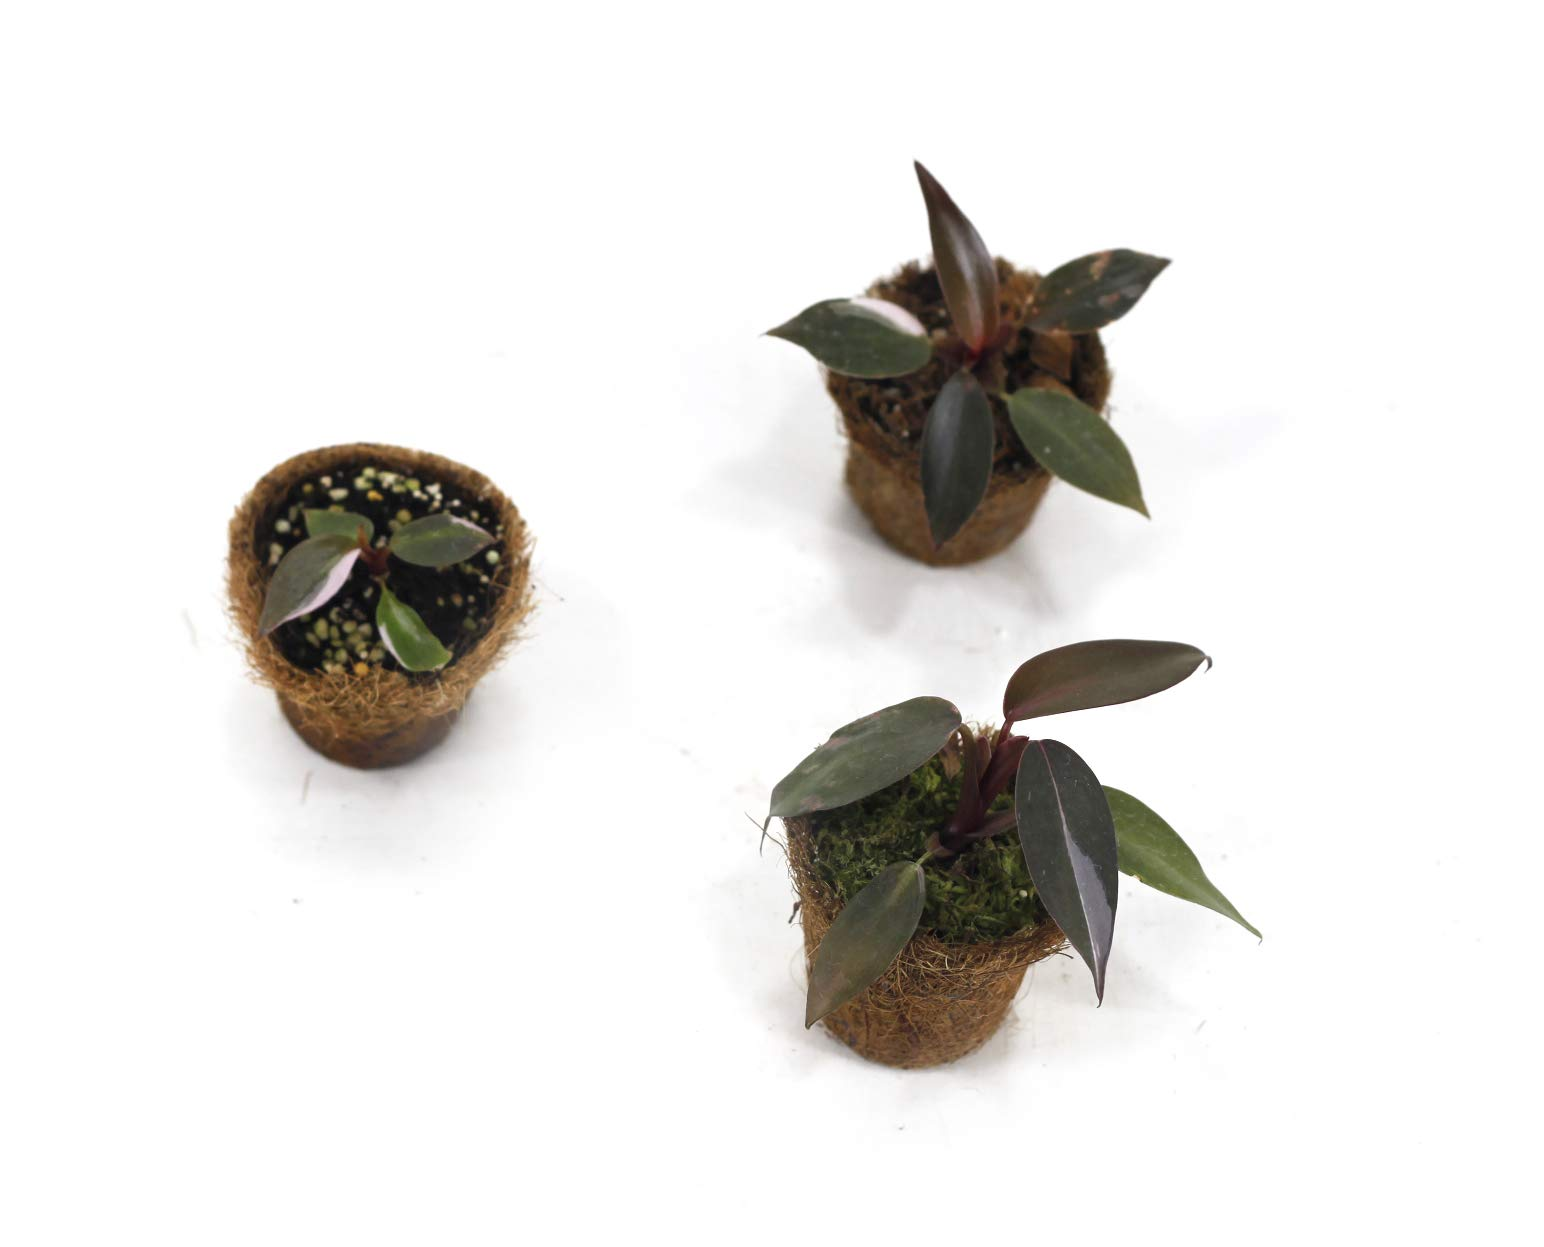 Philodendron Pink Princess Young Plant Trio Set by Joinflower Joinfolia (Image #1)